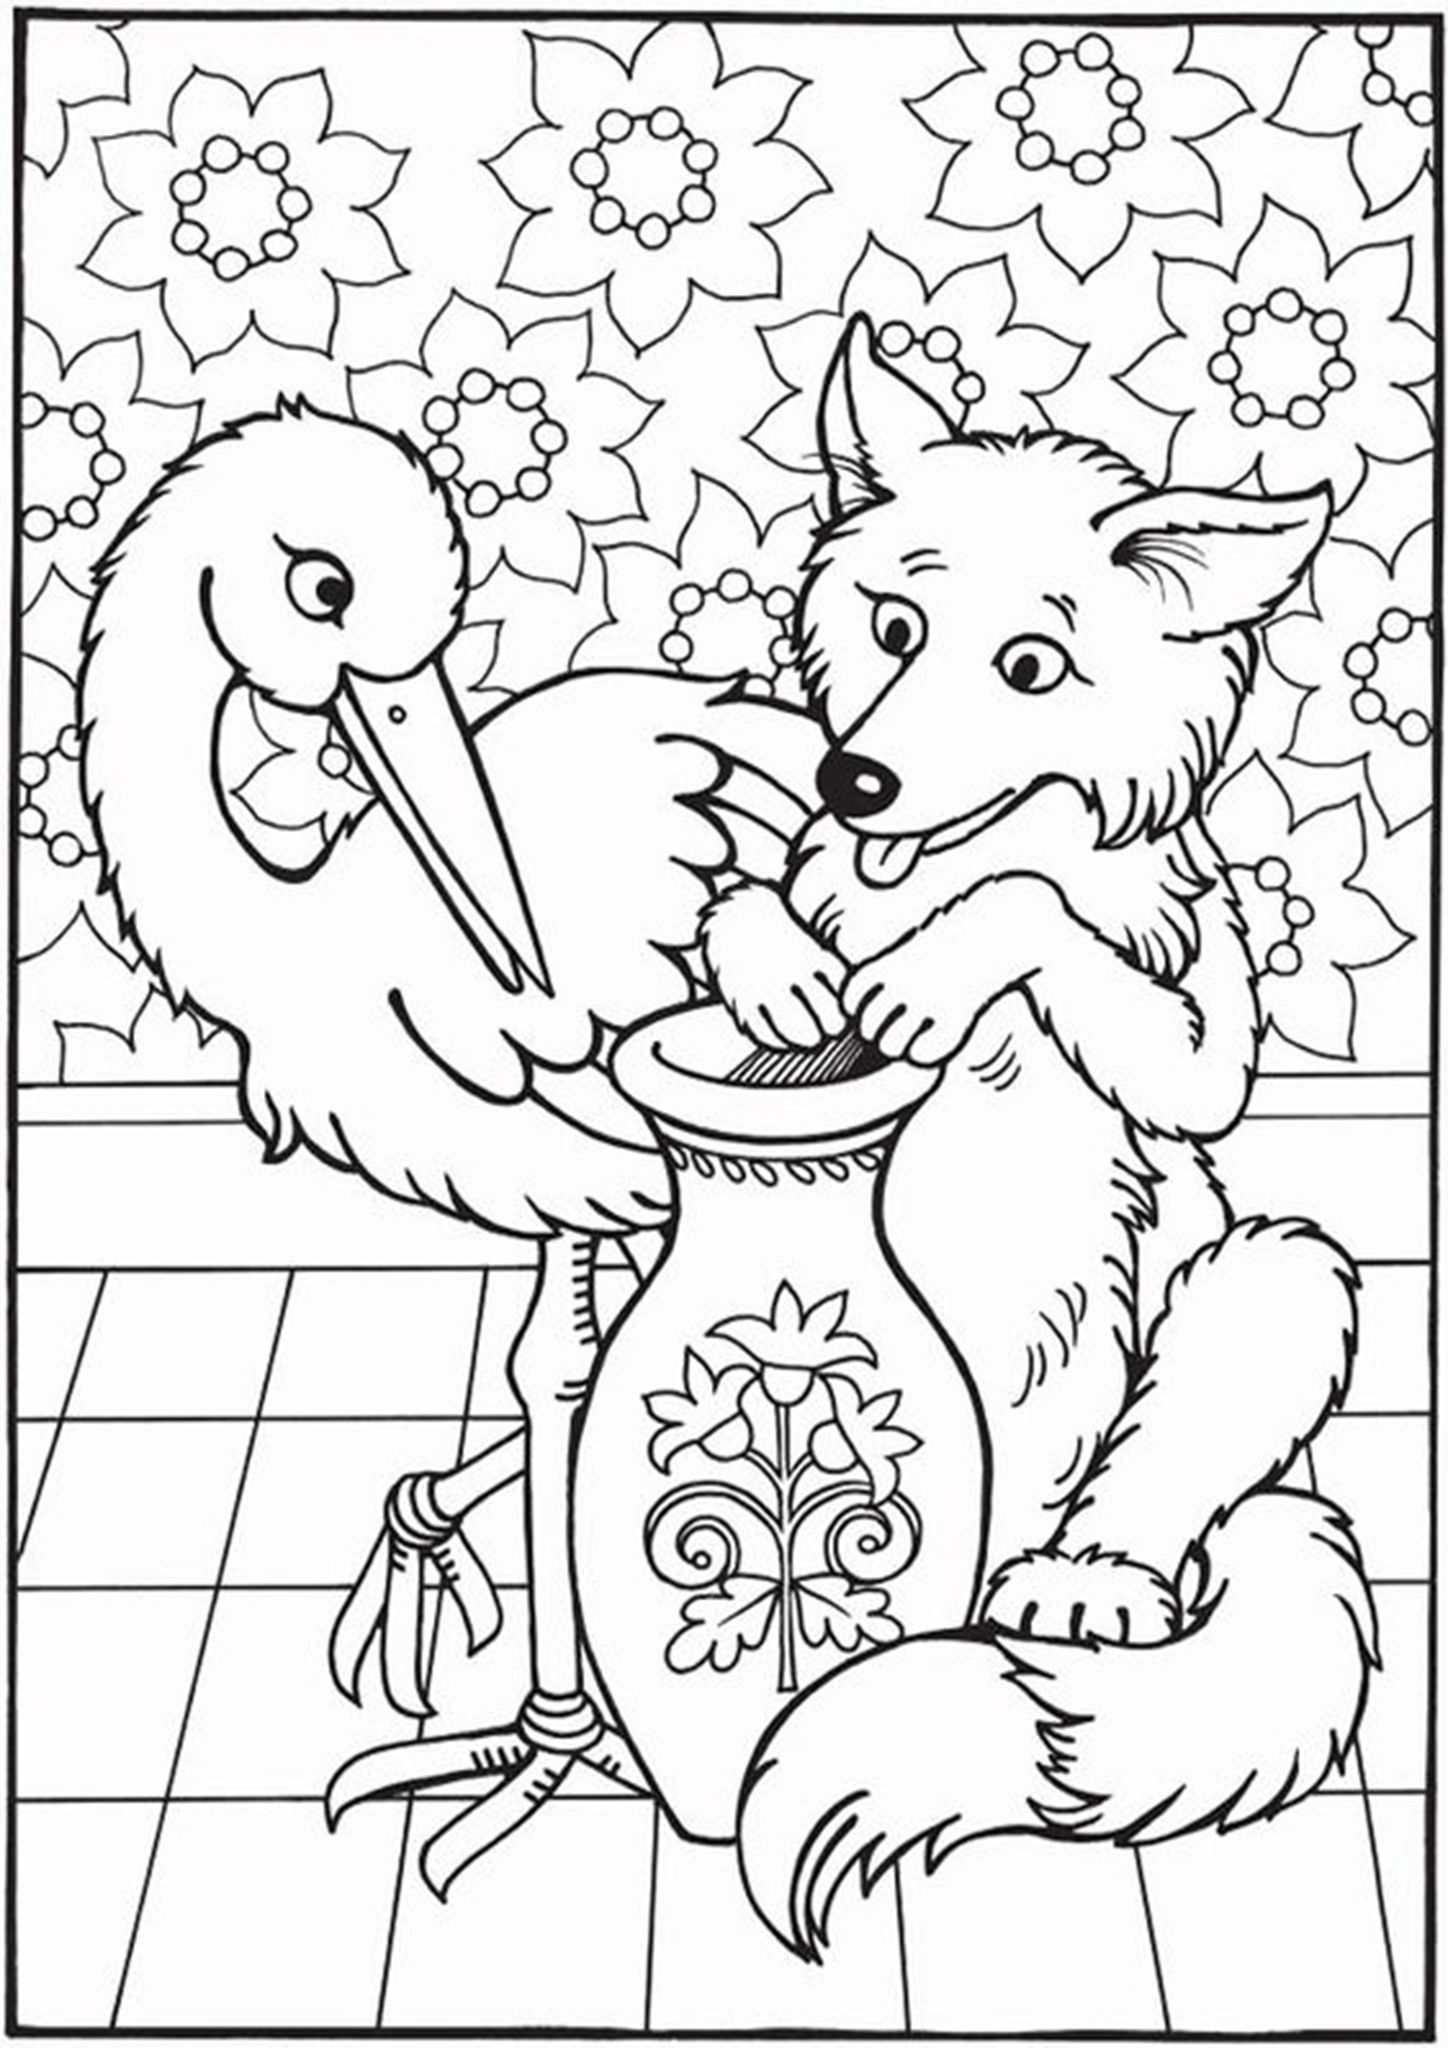 Free Easy To Print Fox Coloring Pages Fox Coloring Page Coloring Pages Cool Coloring Pages